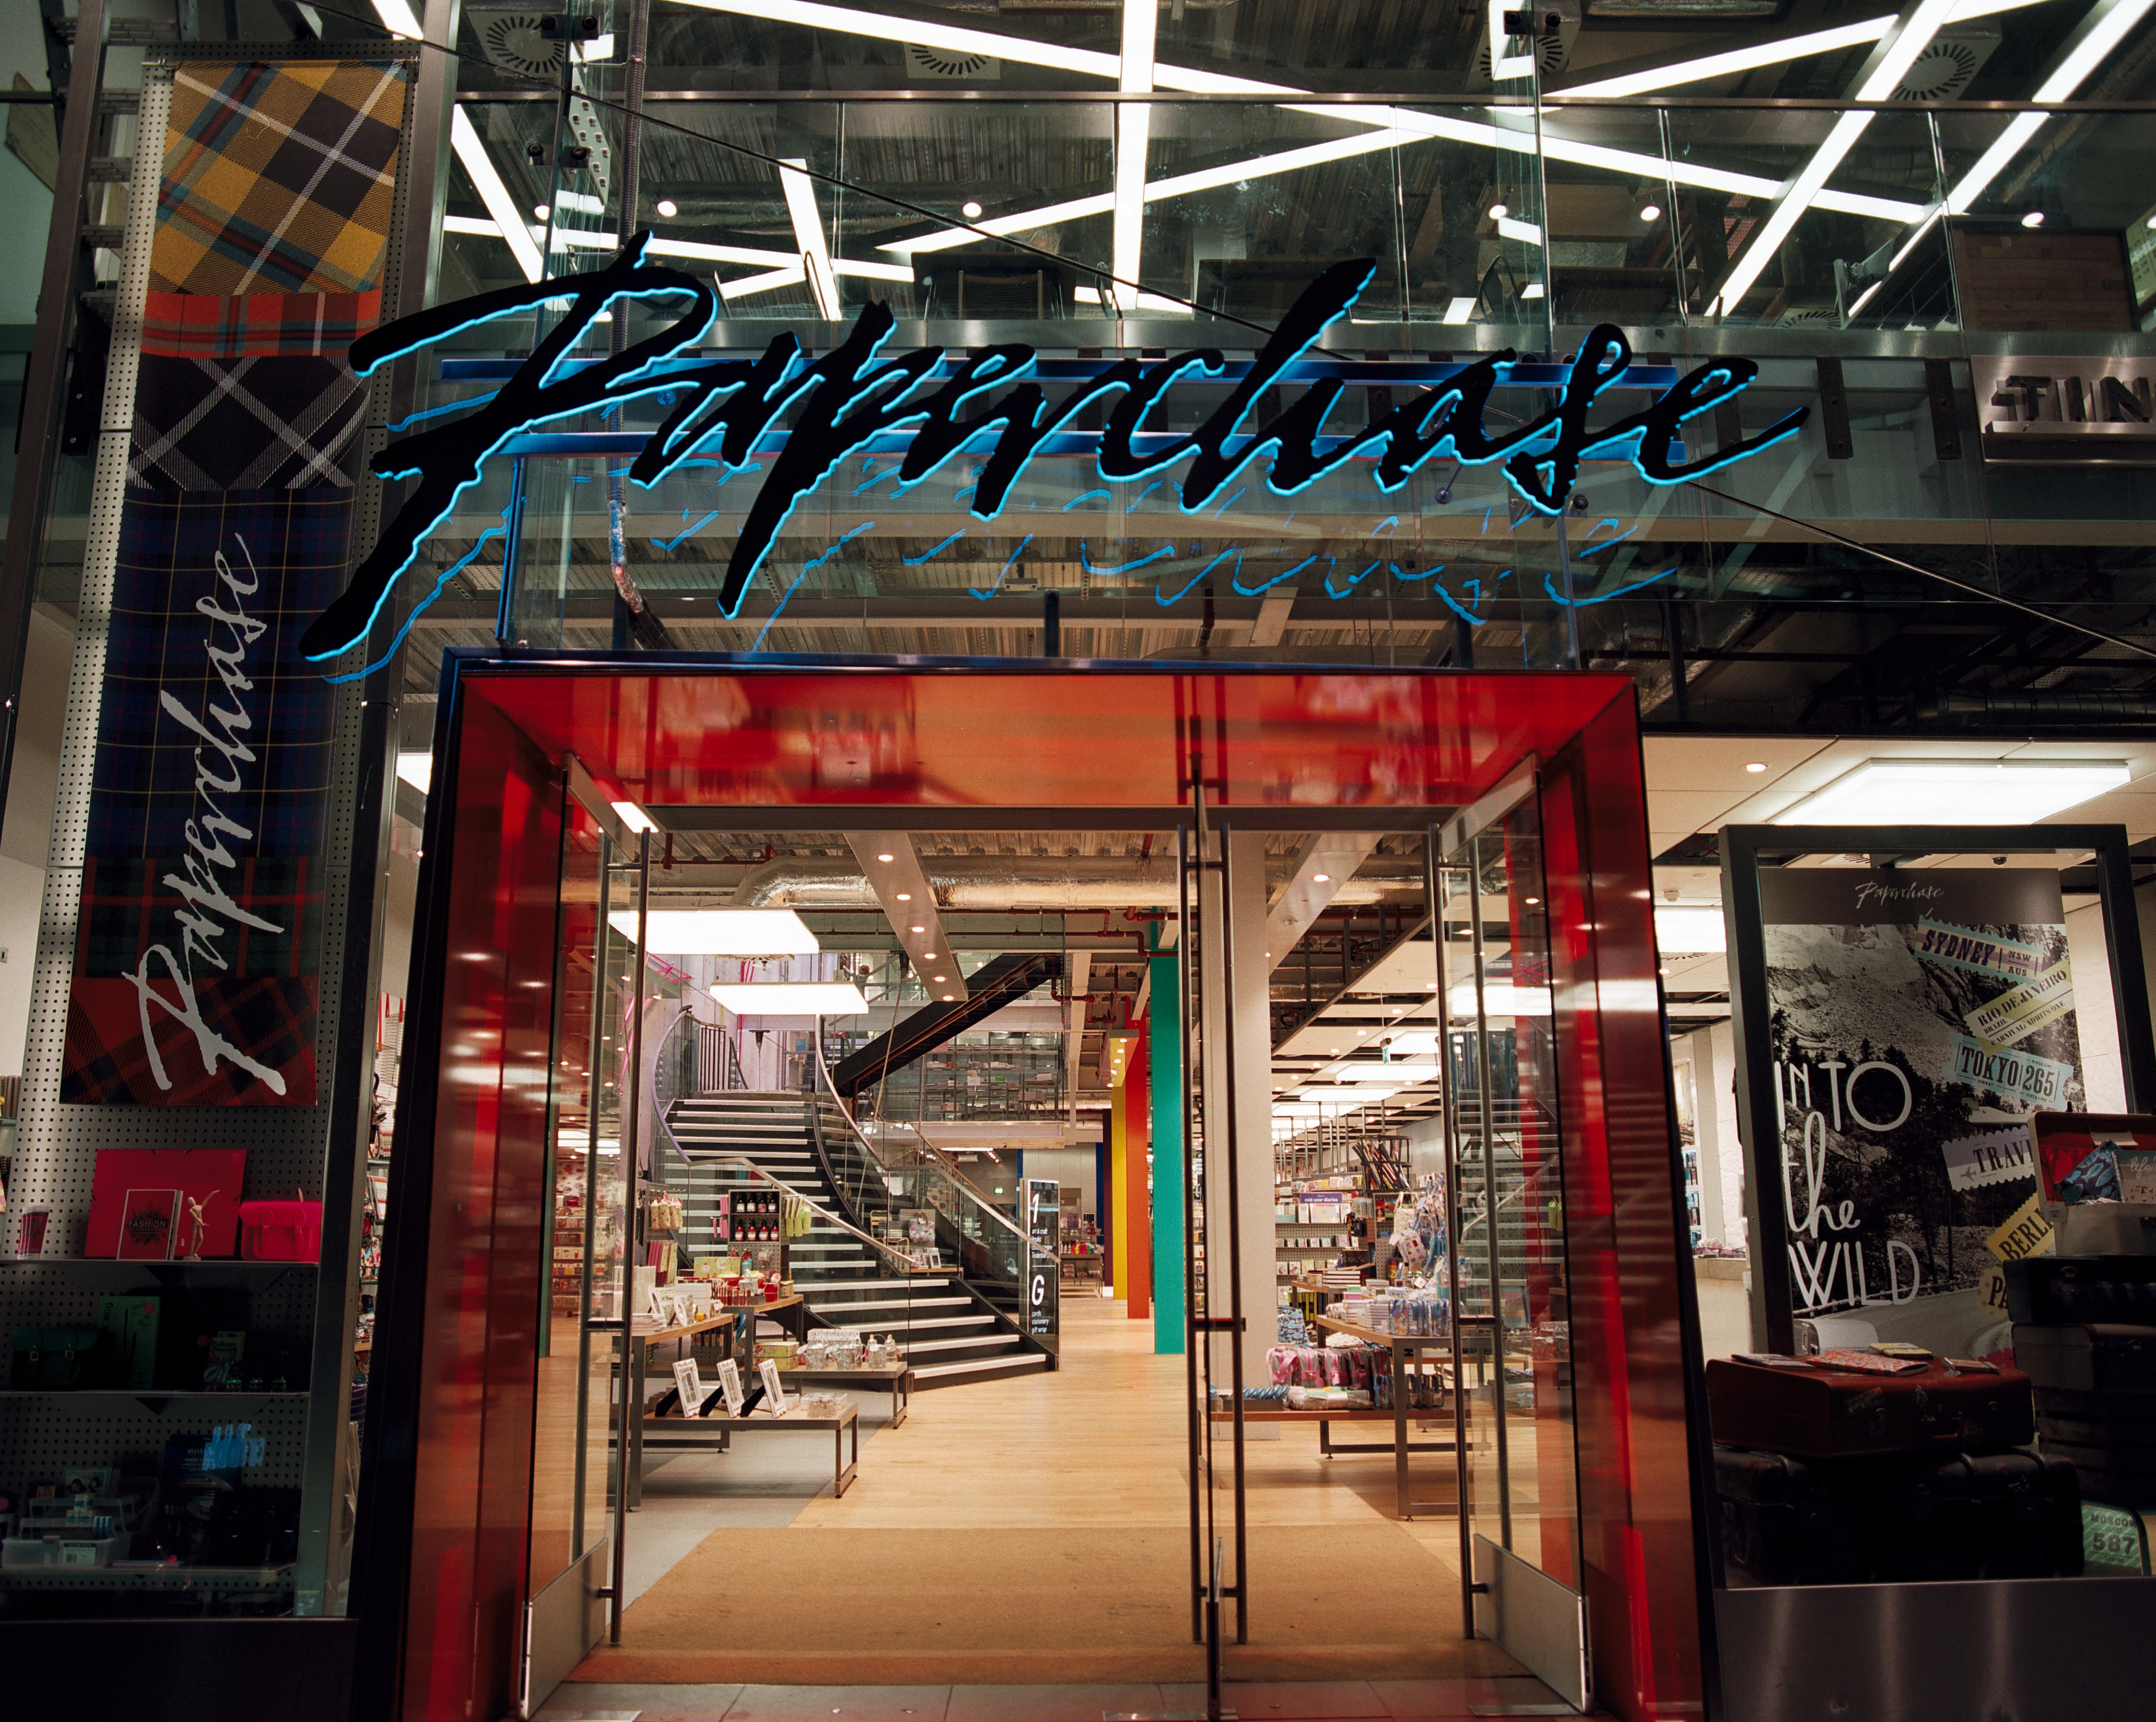 Above: While negotiations with landlords are still ongoing, Paperchase is expected to continue trading from 90-100 stores as well as online.